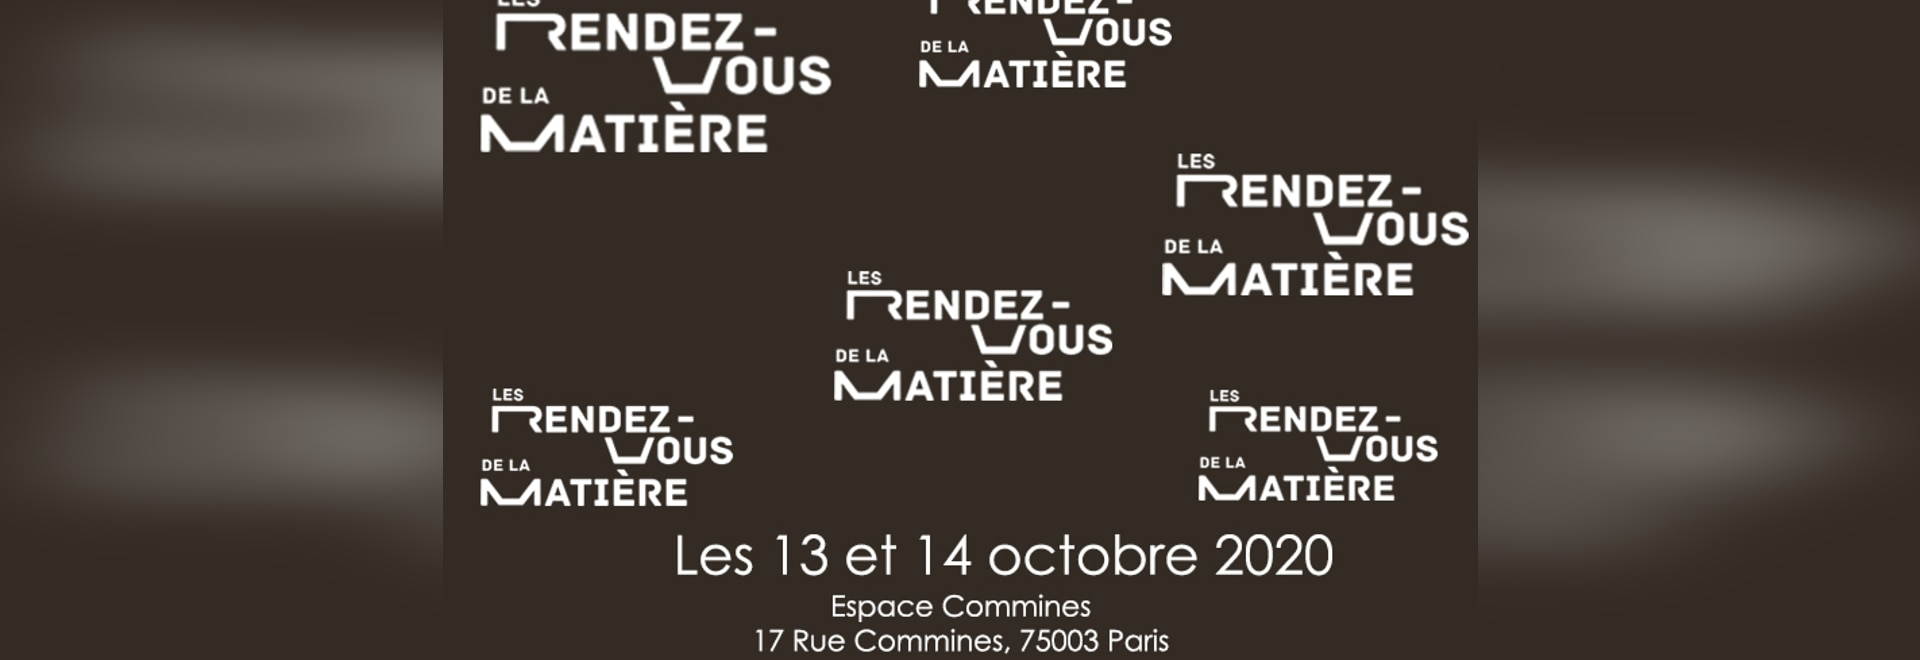 Fair RDV de la Matiere 13-14 october 2020 in France